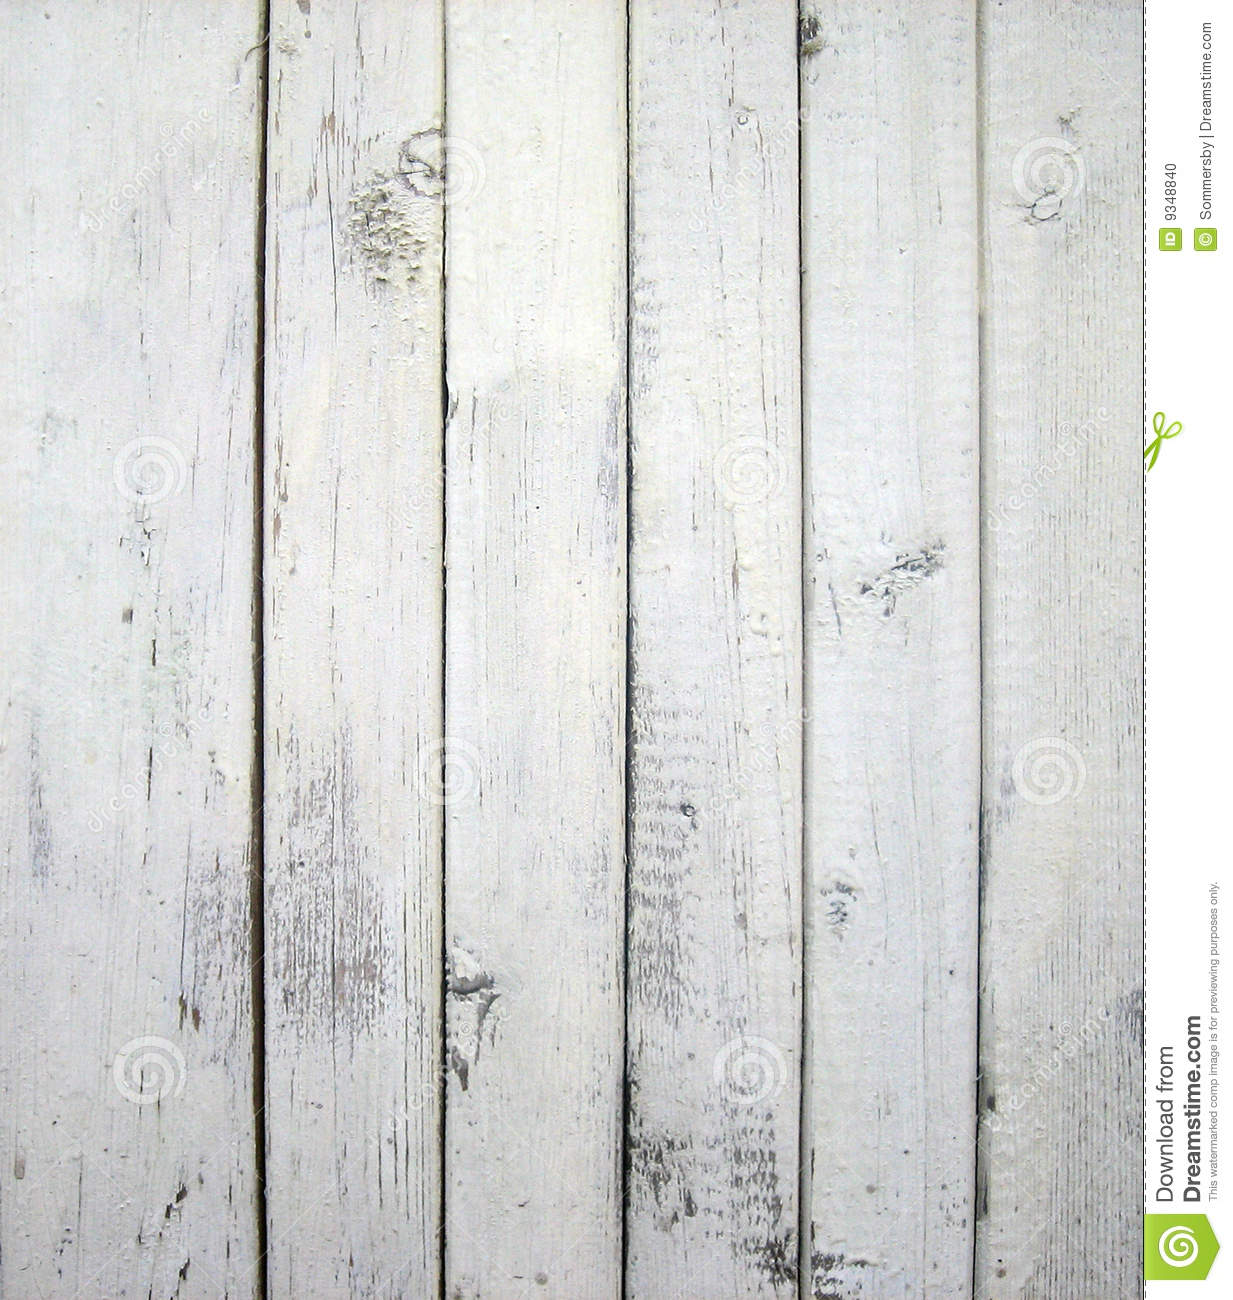 White painted old wooden wall.